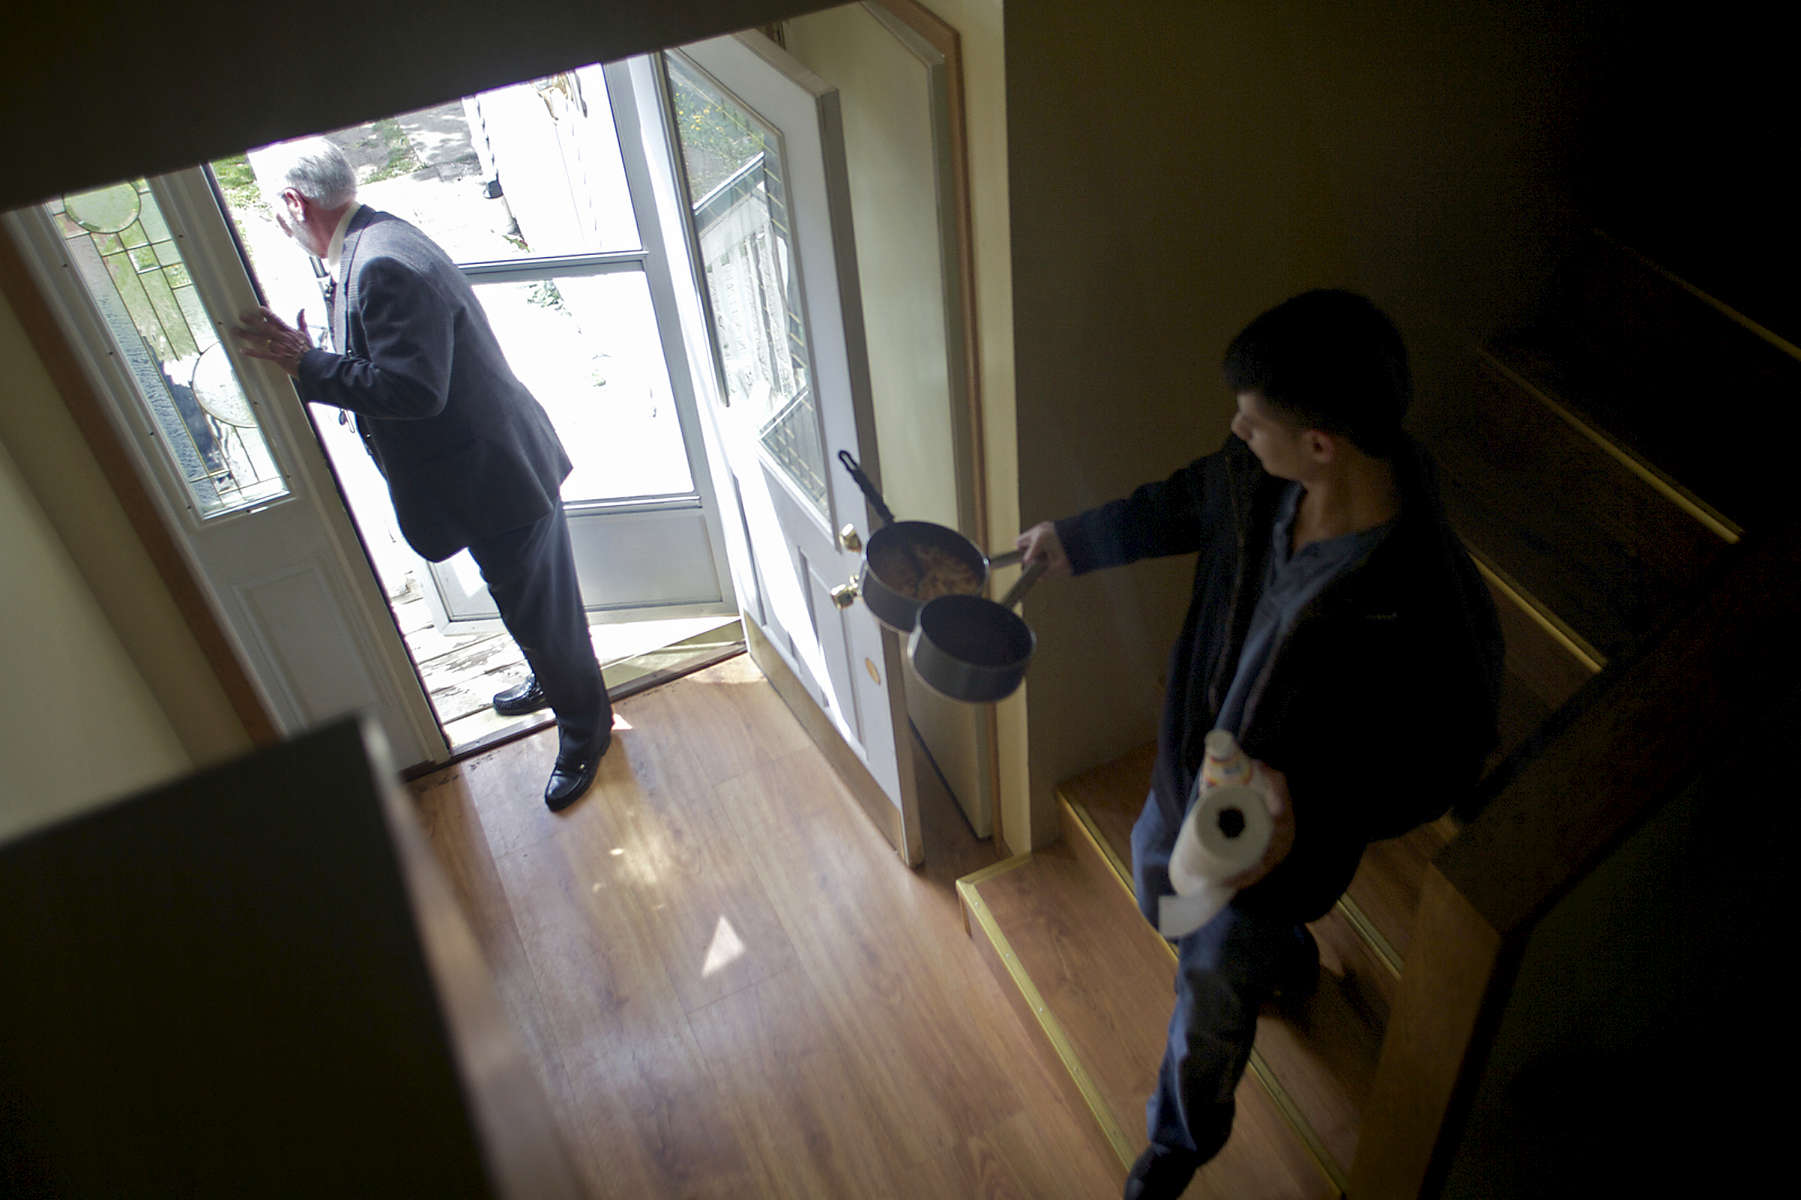 Realtor Joseph Laubinger, left, visits the Lopez home in suburban Chicago as they move out of the foreclosed property.